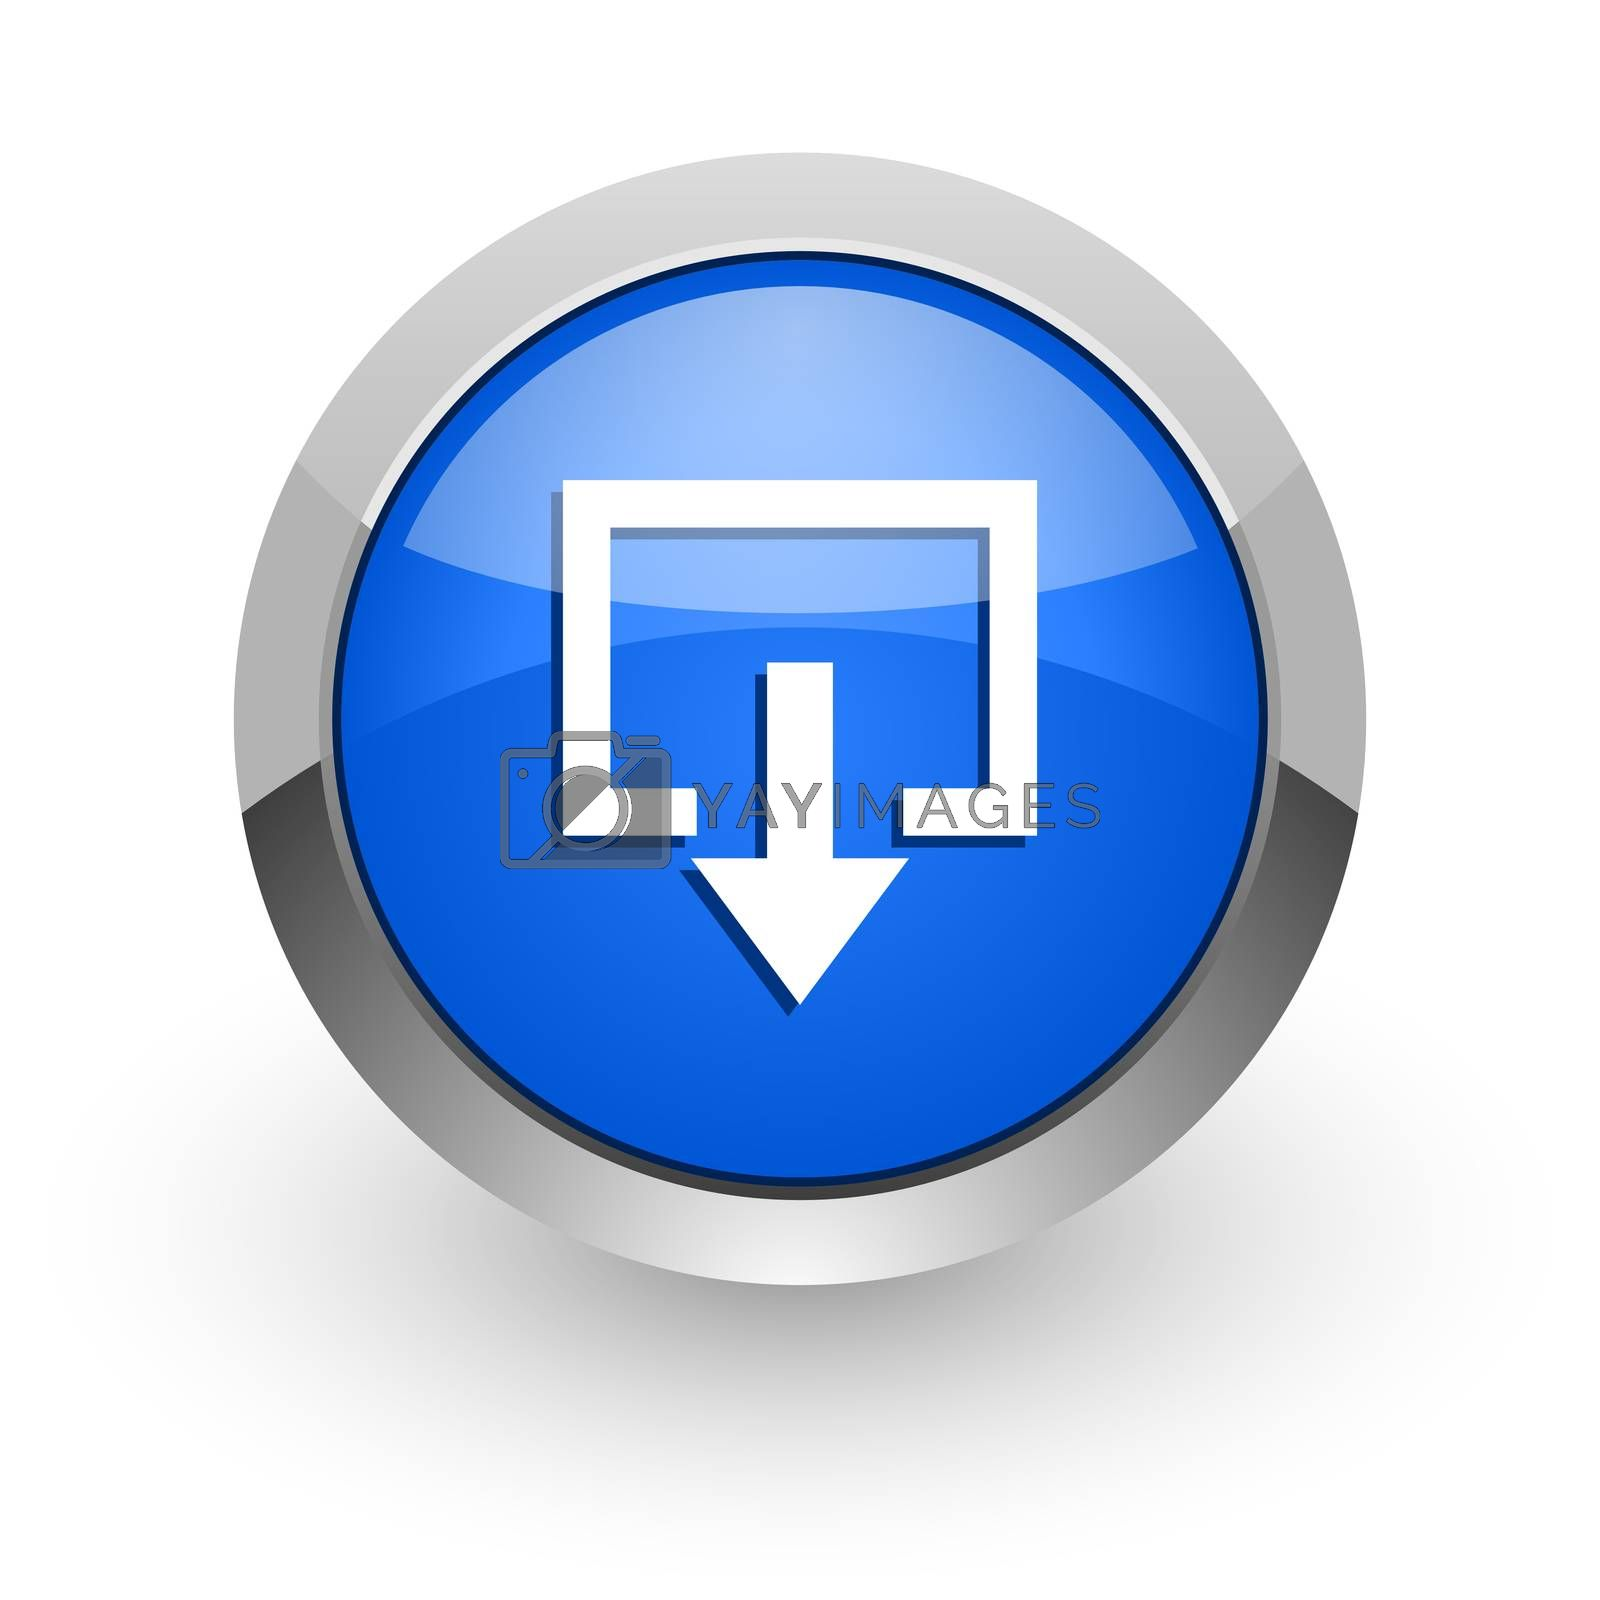 Royalty free image of exit blue glossy web icon by alexwhite